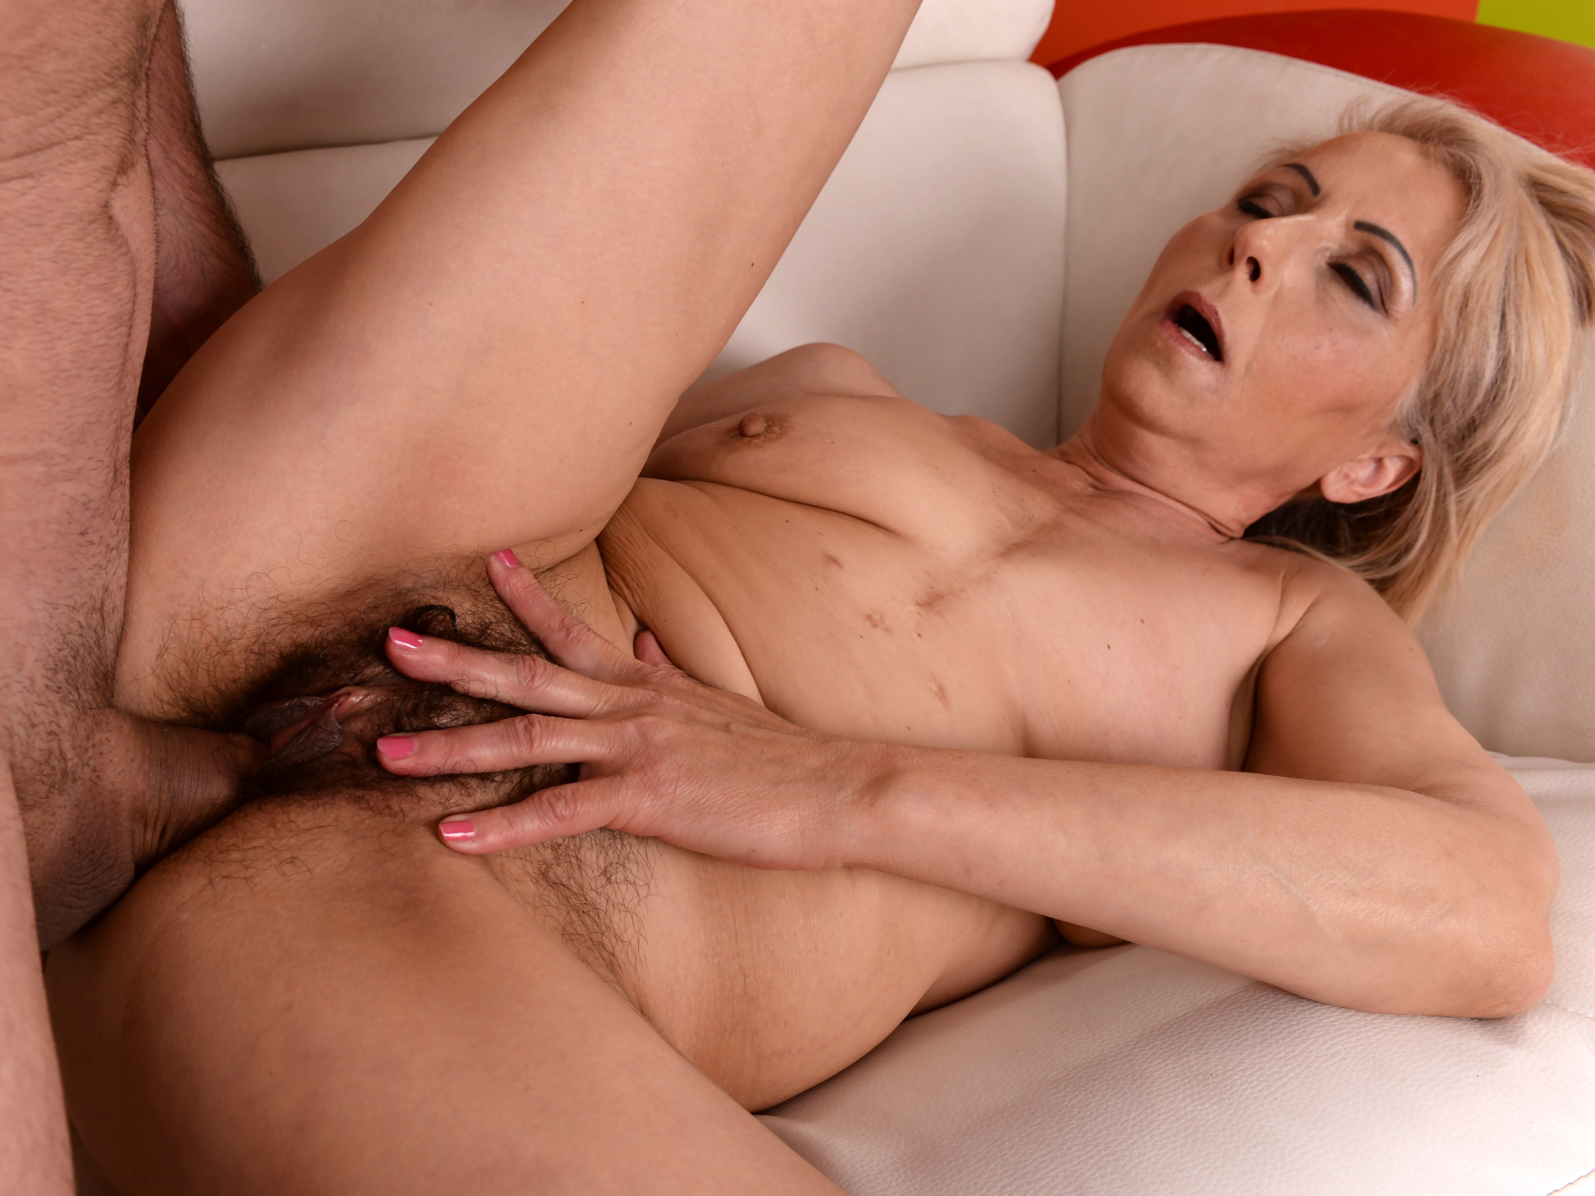 Hairy granny pussy fucked hard on GotPorn (5532847)